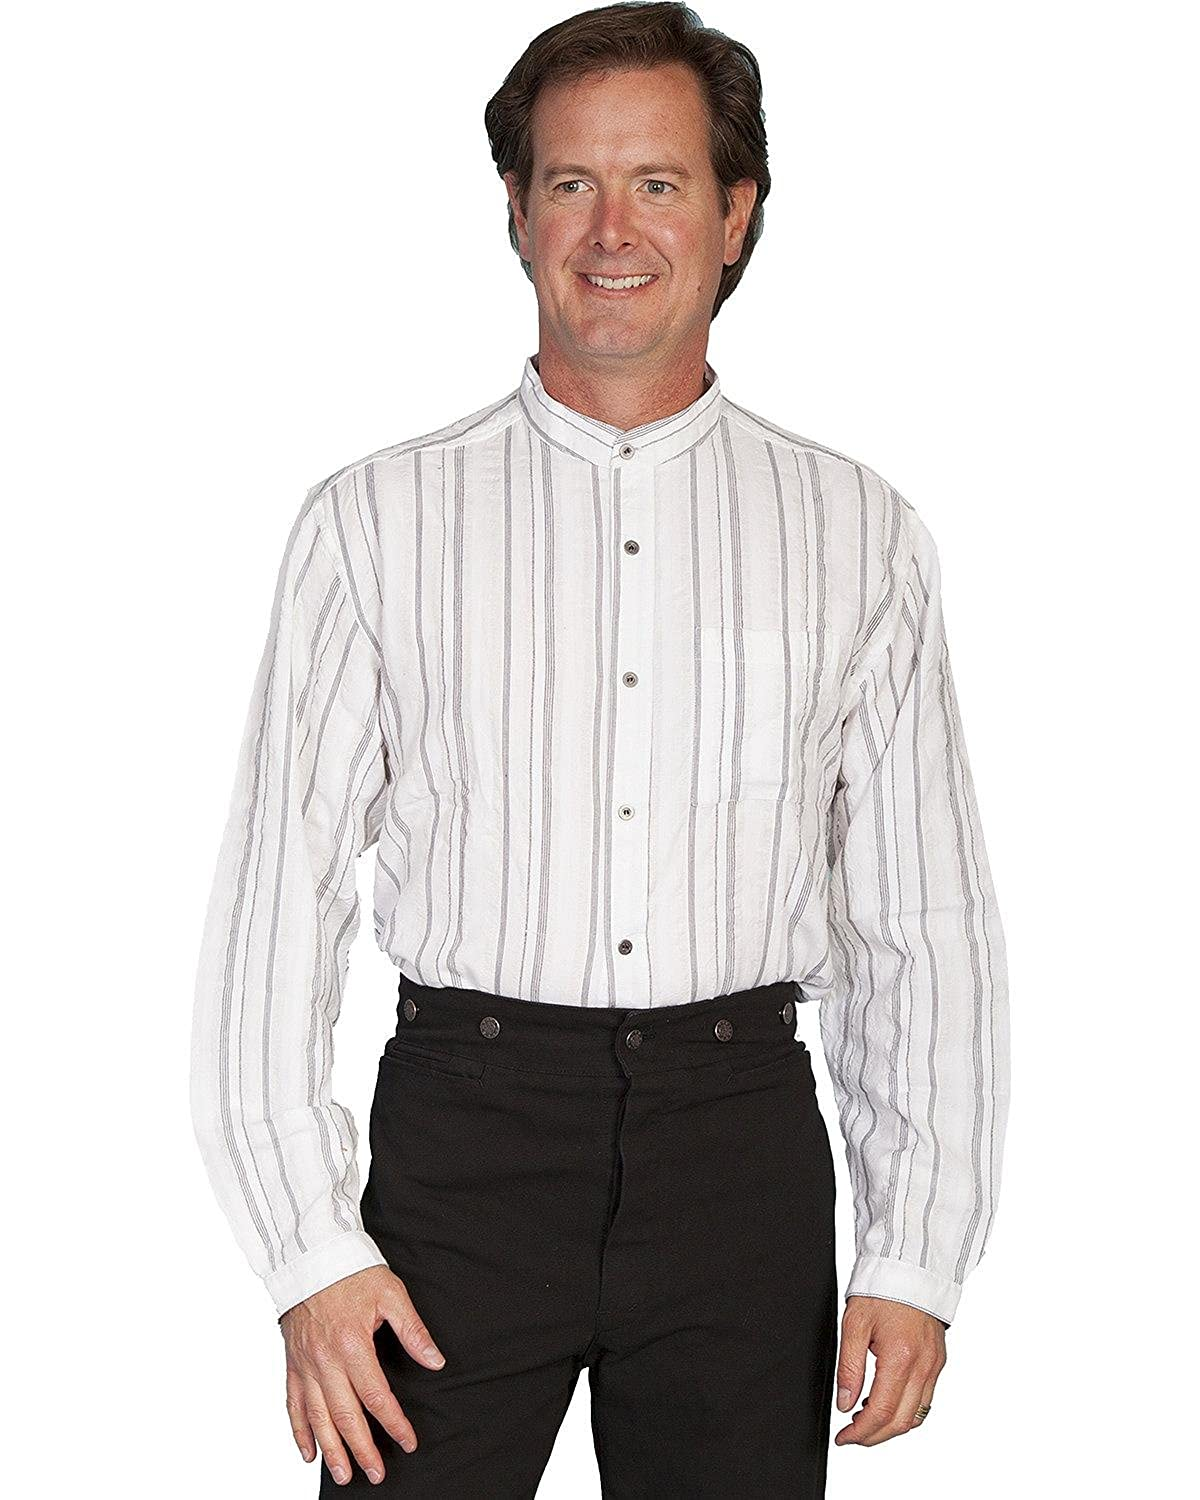 1920s Style Mens Shirts | Peaky Blinders Shirts and Collars Scully One of Our Best Selling Shirts - White $49.99 AT vintagedancer.com